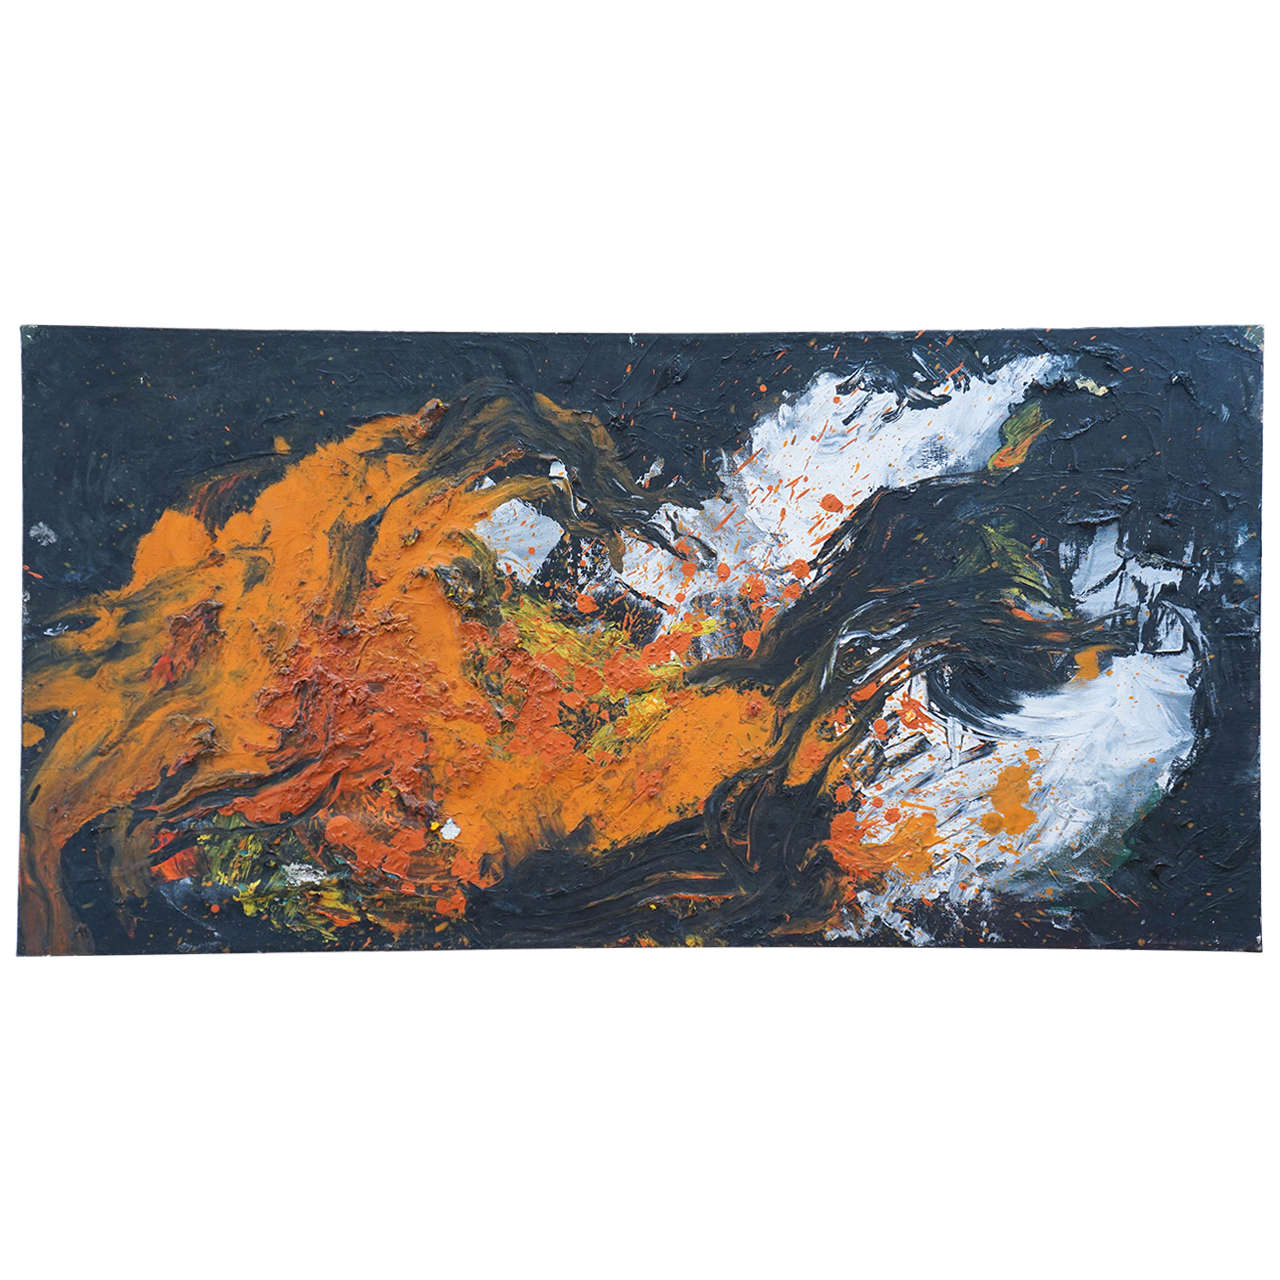 Abstract Painting by Linda Durian from 1960